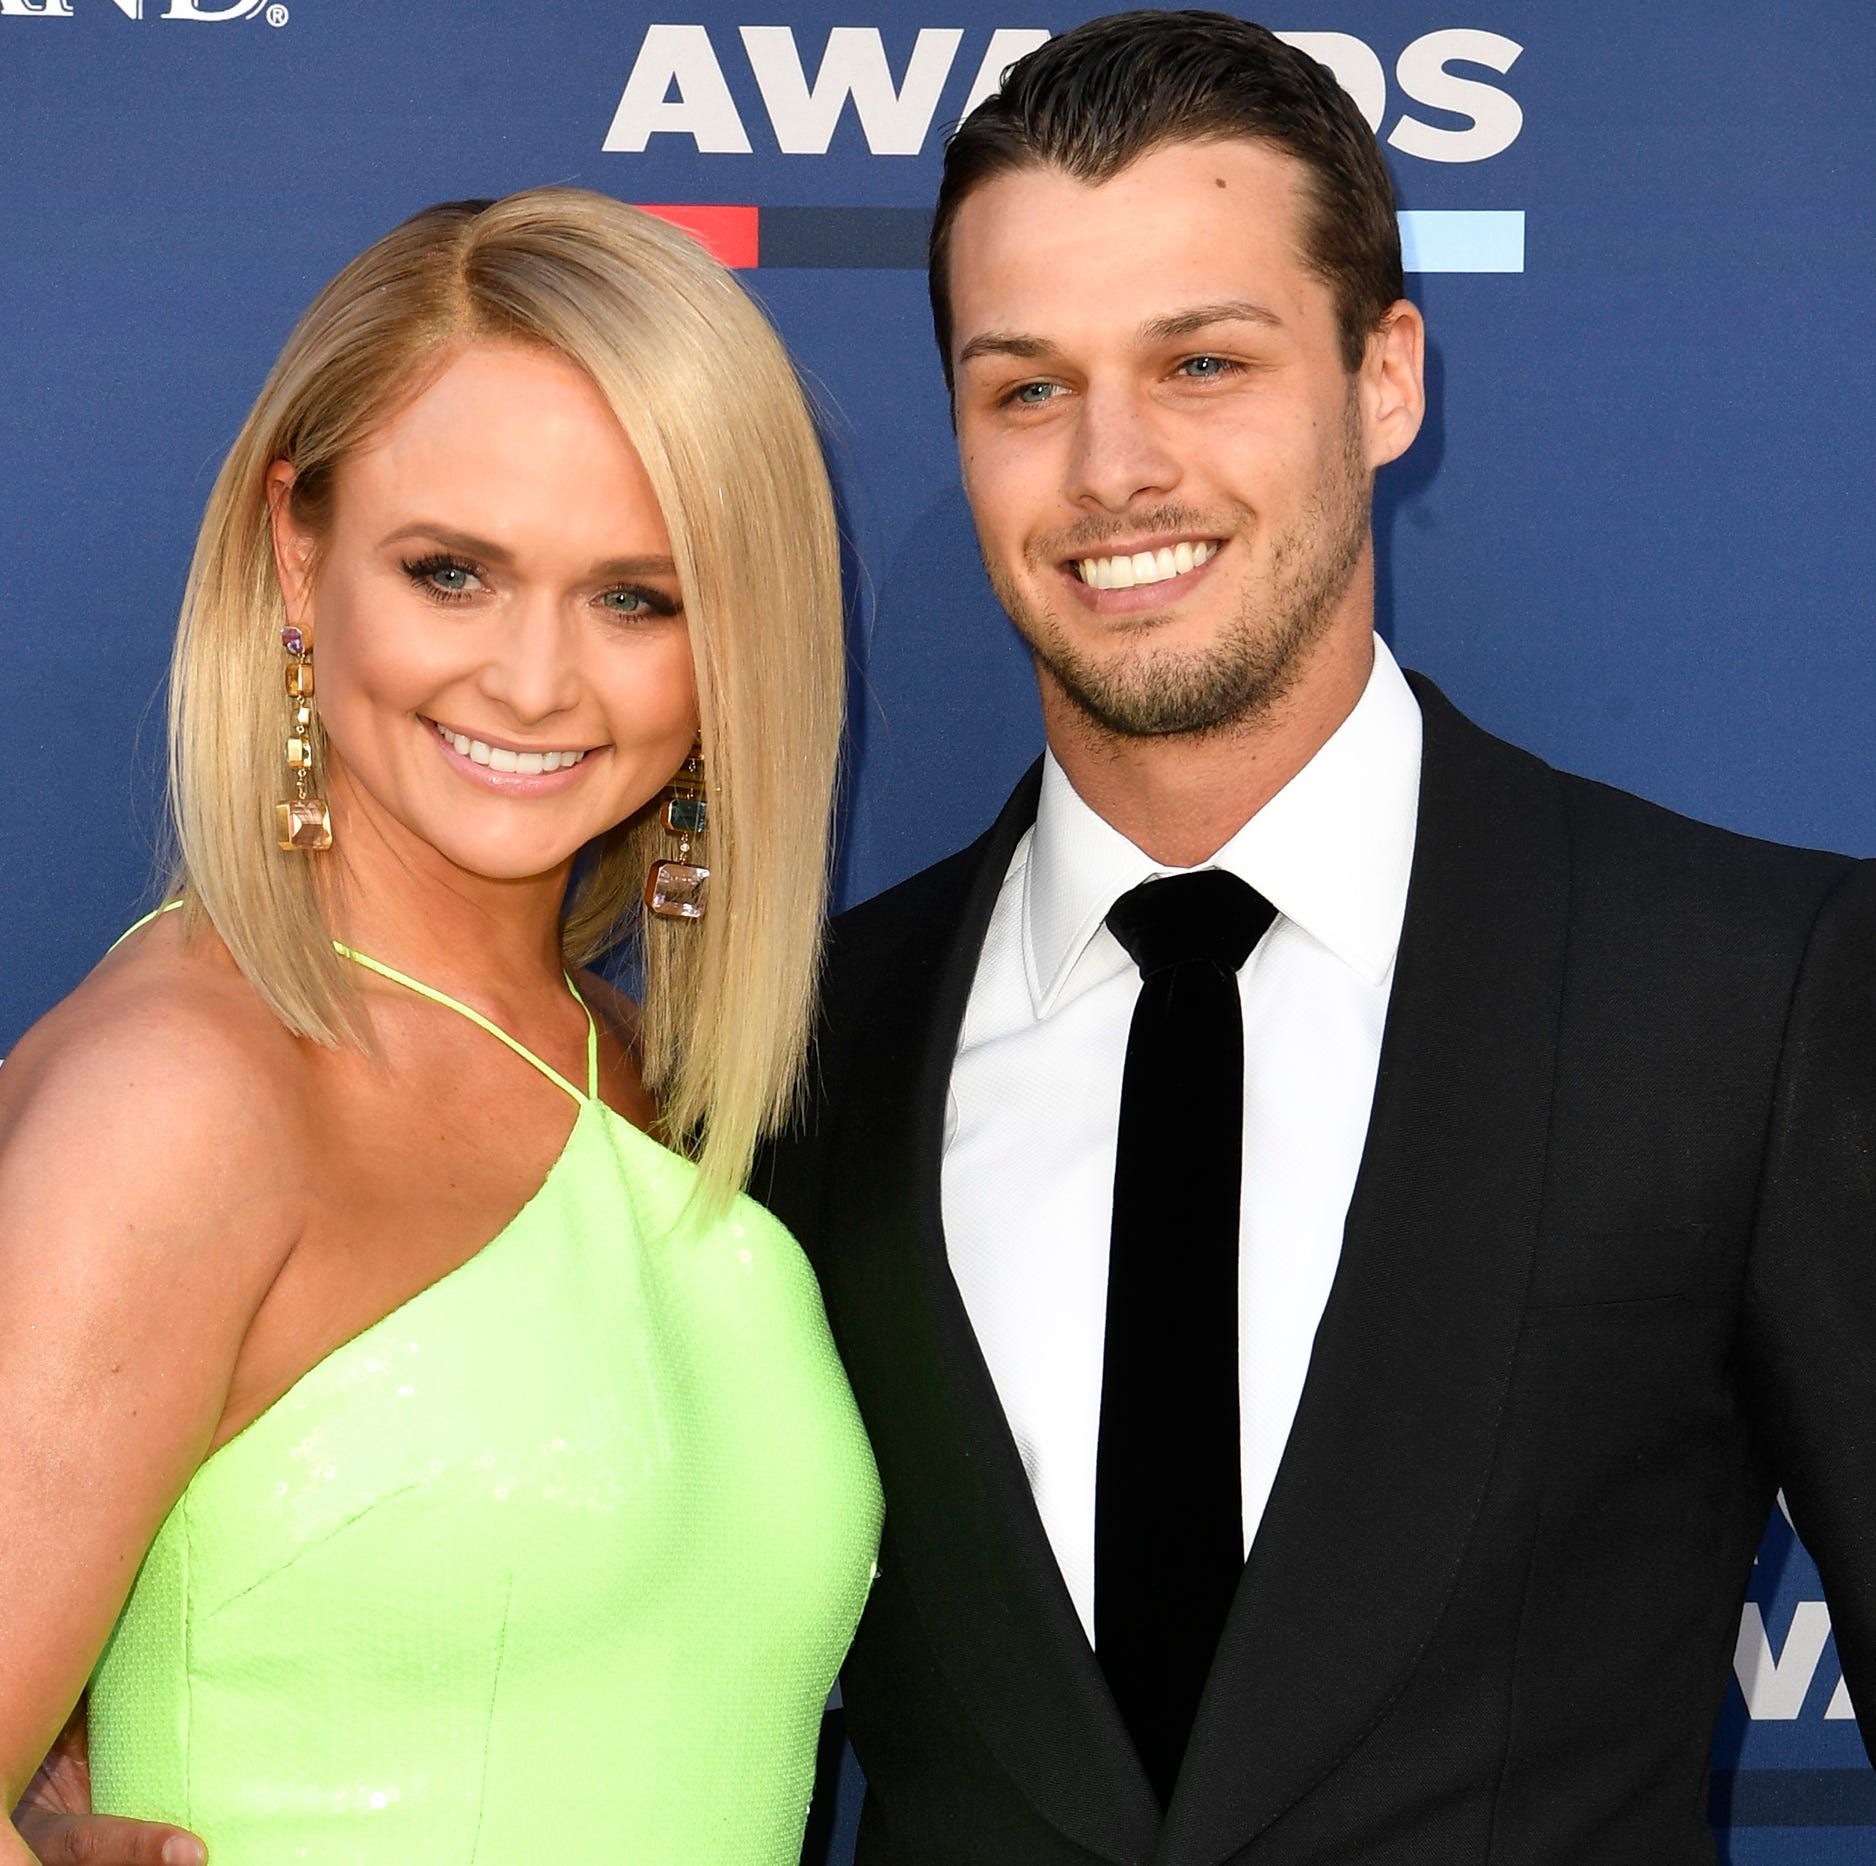 ACM Awards: Miranda Lambert walks red carpet with new husband Brendan Mcloughlin